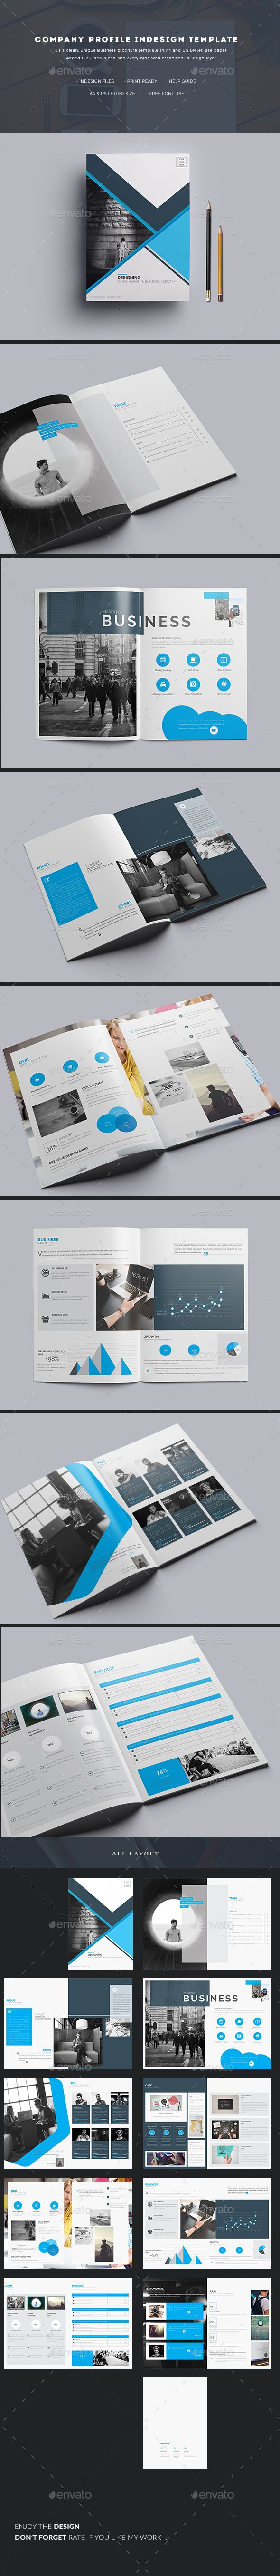 Company Profile InDesign Template